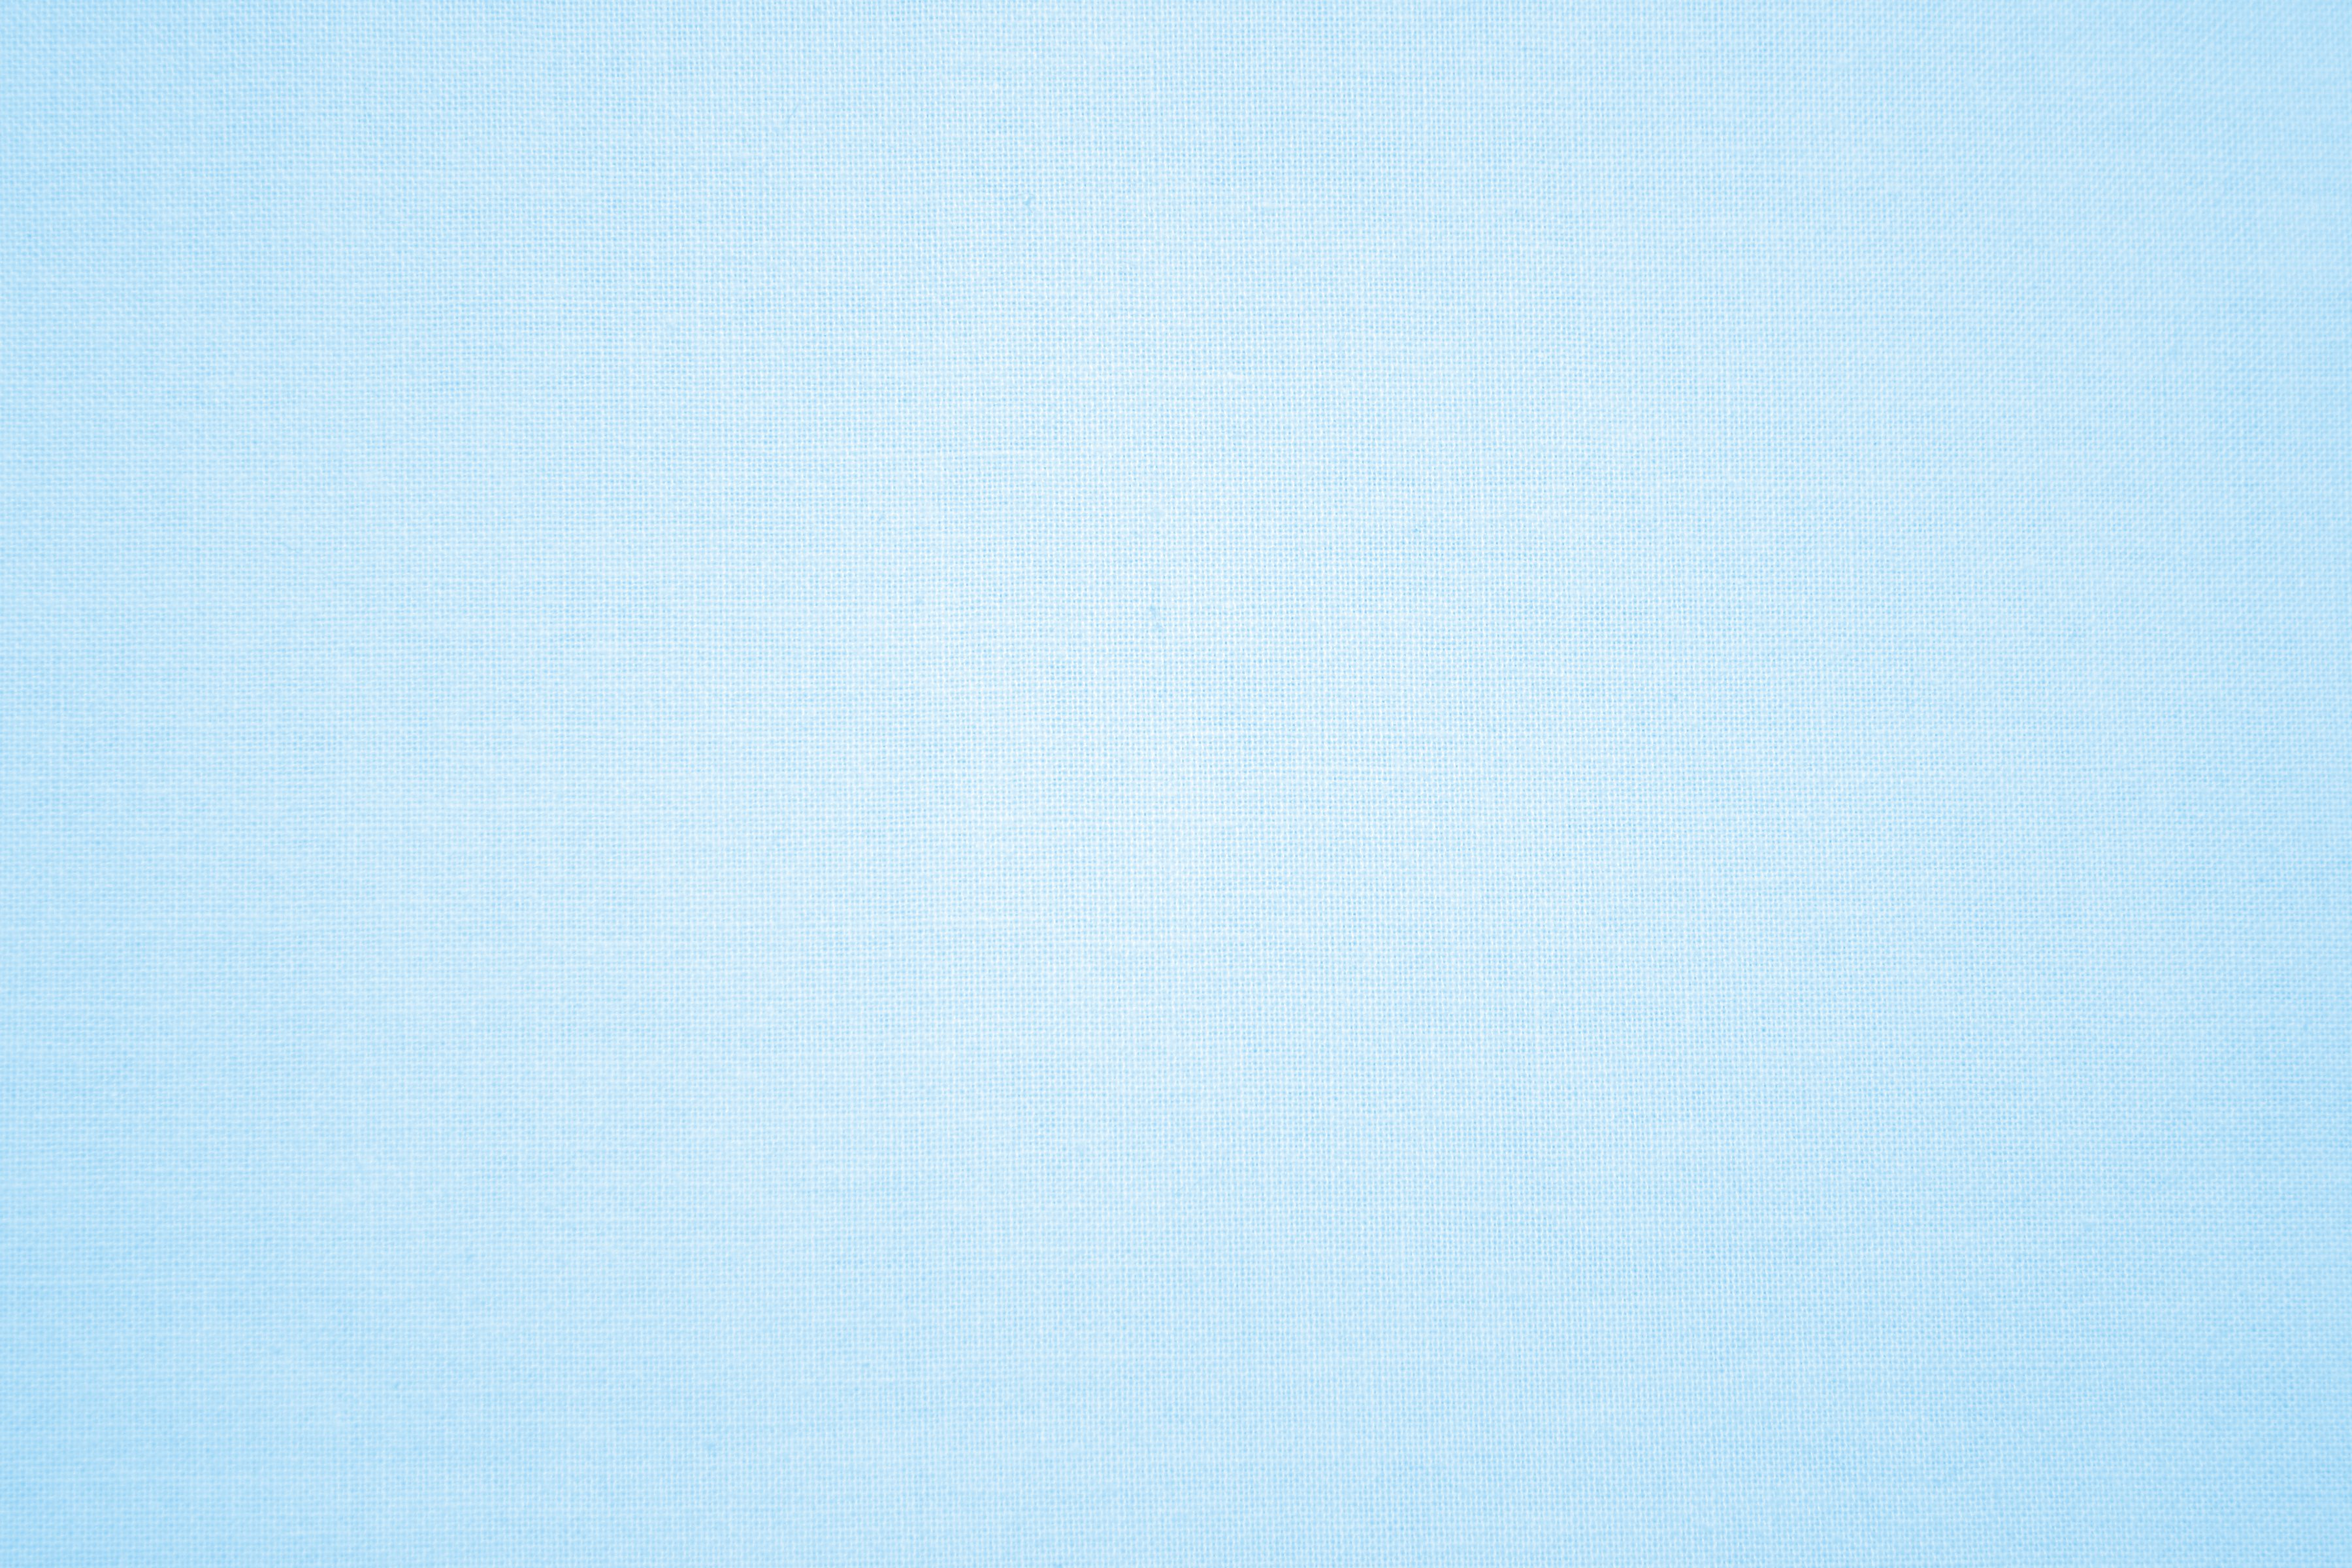 Baby Blue Canvas Fabric Texture Picture Photograph Photos 3600x2400